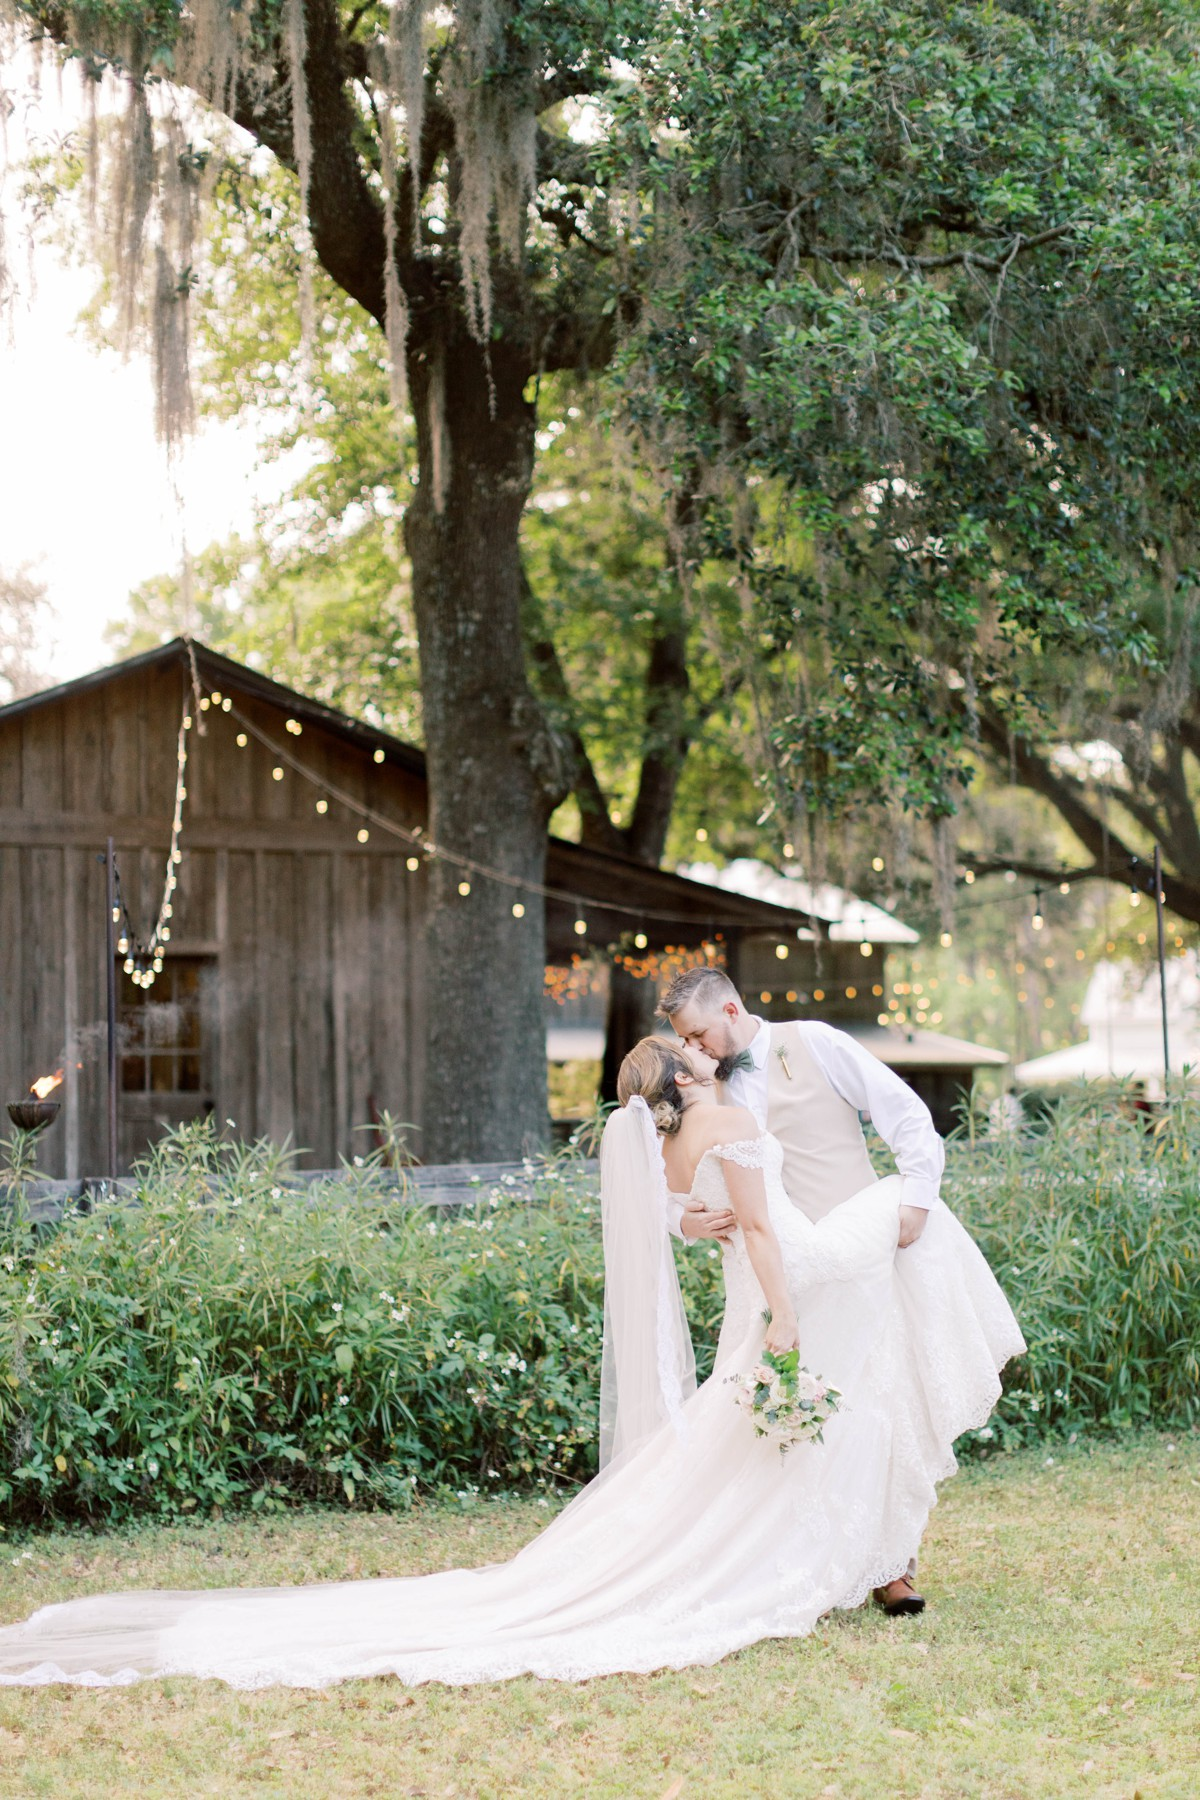 Bressler-Wedding-Preview-Tuckers-Farmhouse-Jacksonville-Wedding-Photographer-Chantell-Rae049.jpg